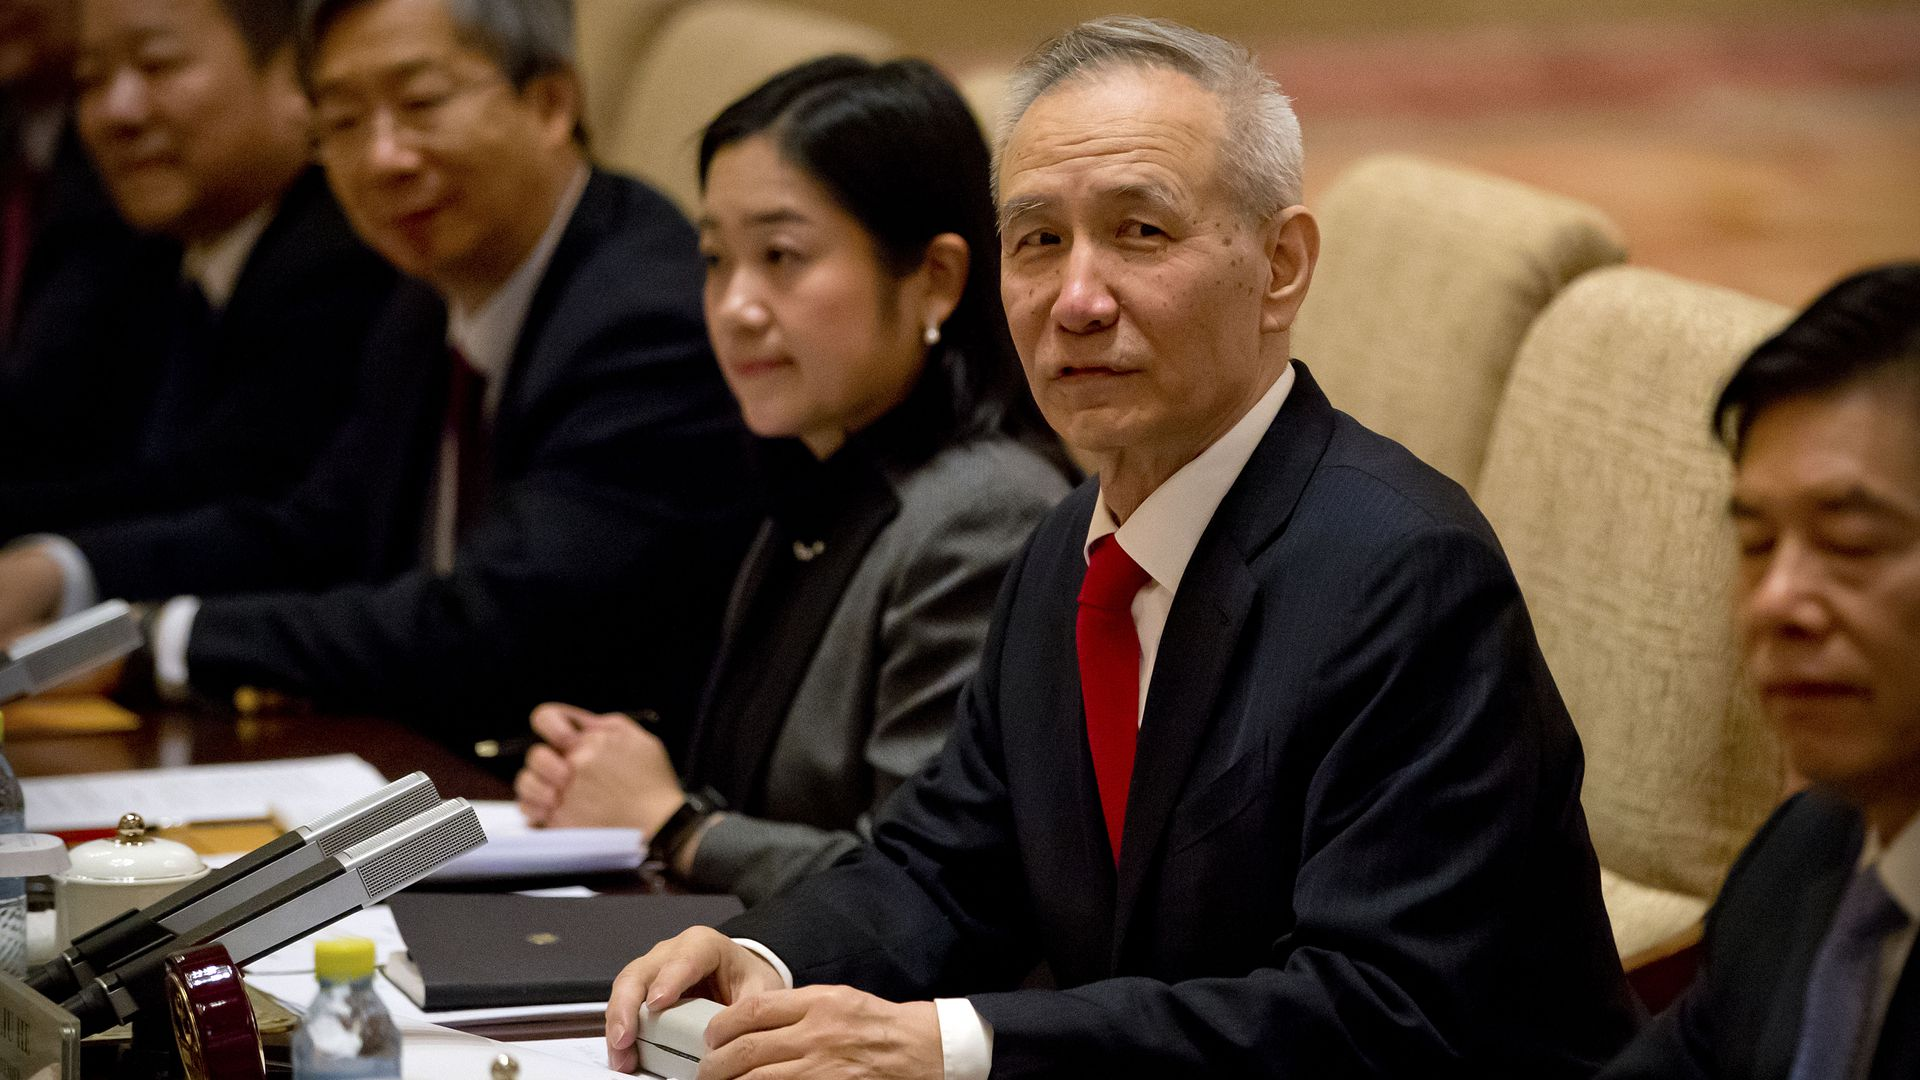 In this image, Vice Premier Liu He sits at a conference table in a beige chair next to other professionally dressed men and women.